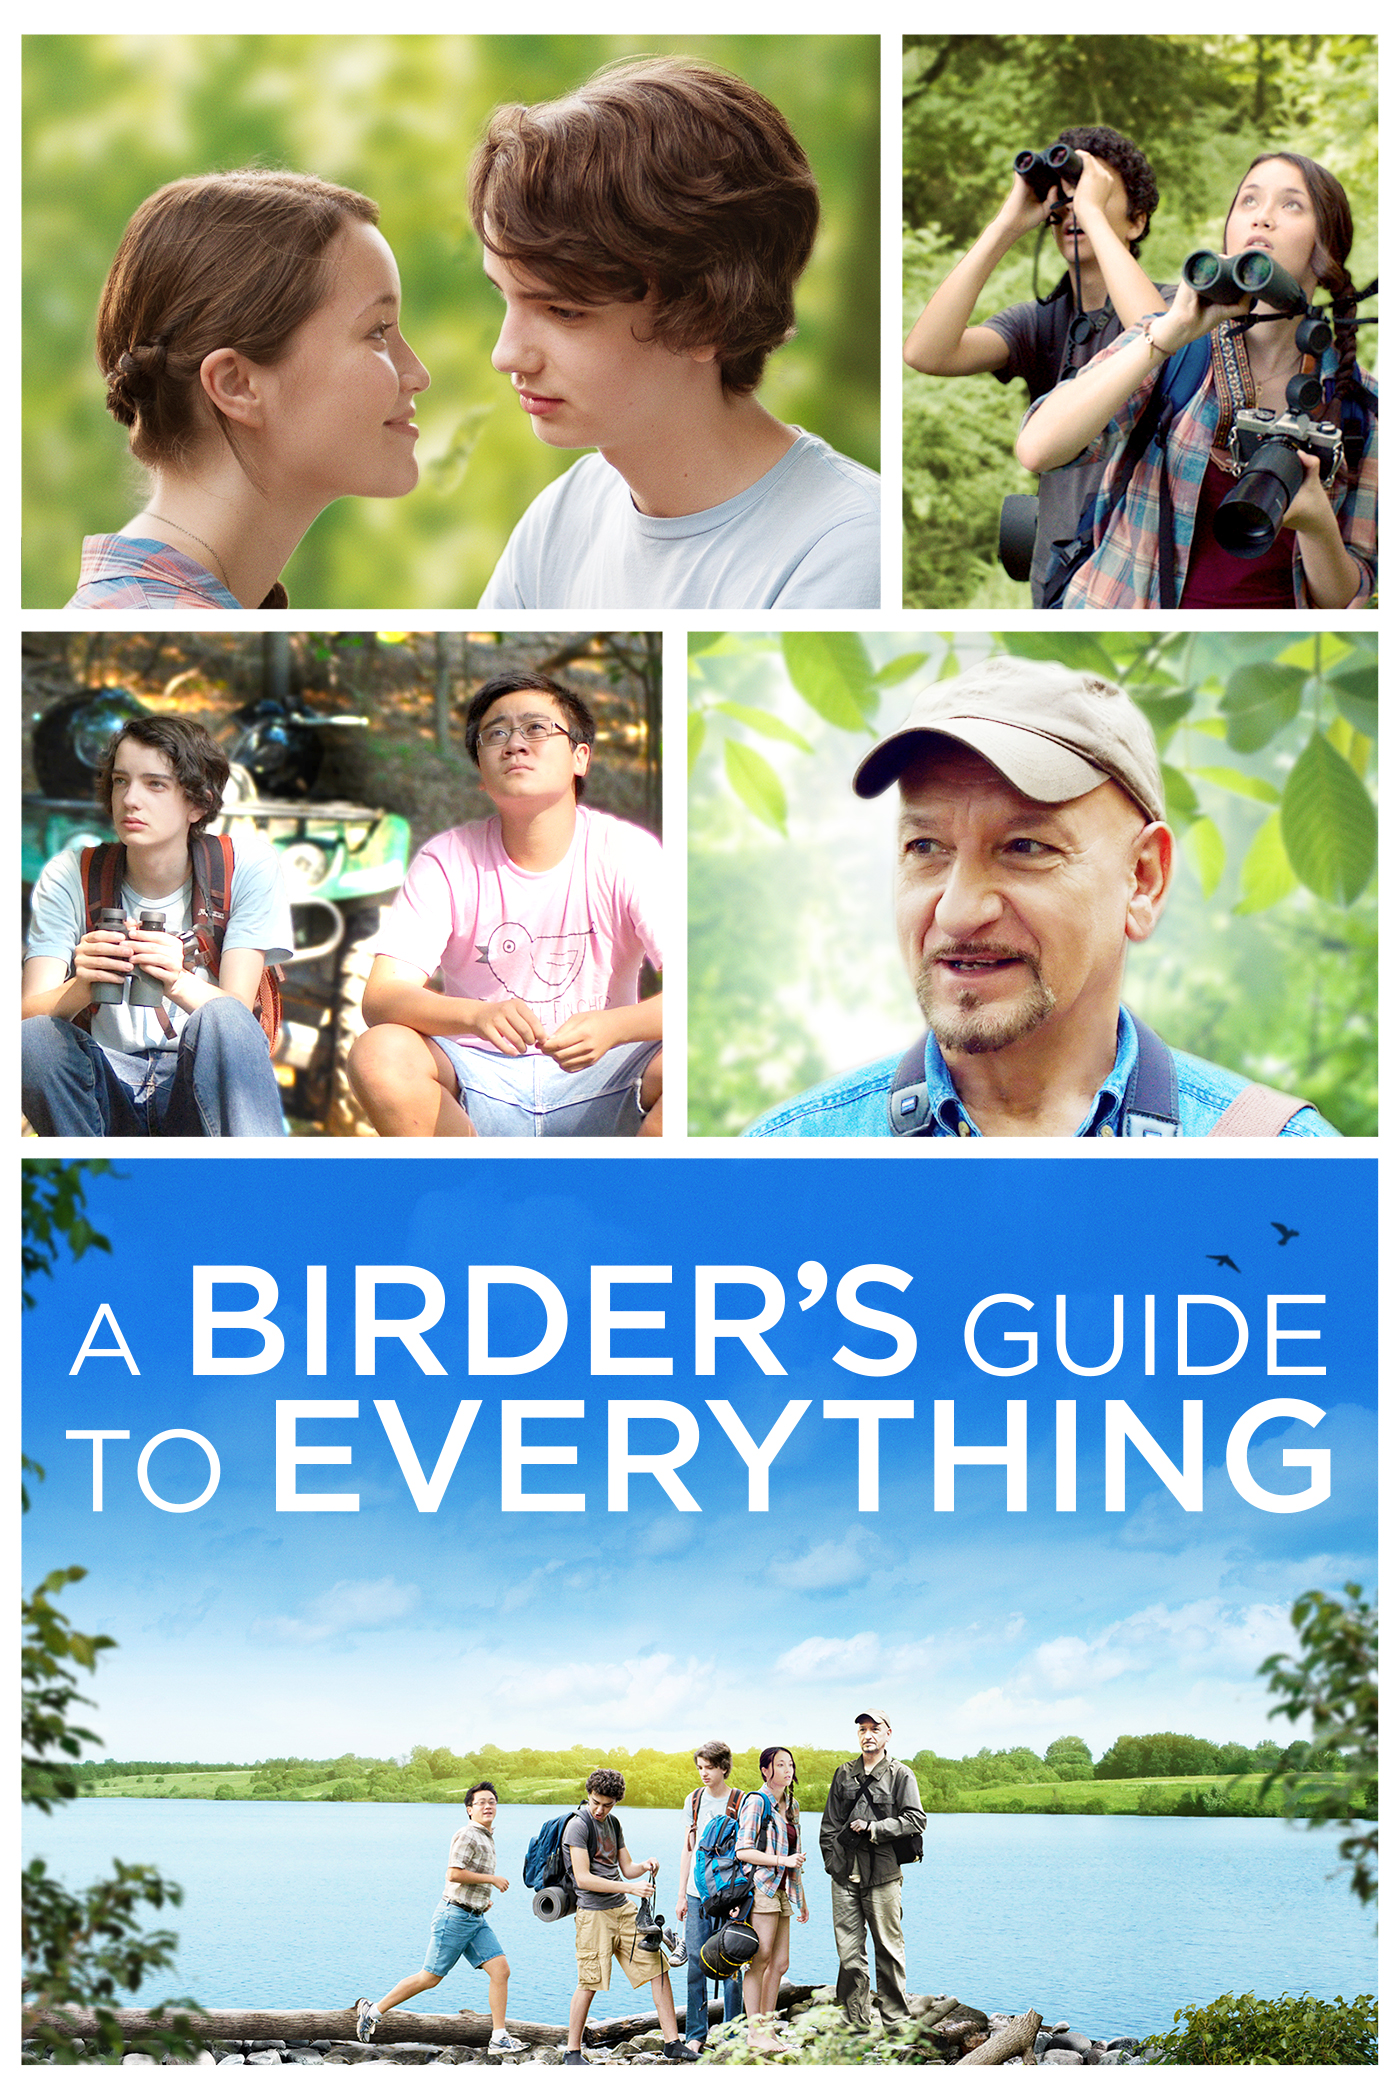 A Birders Guide To Everything iTunes - Movies - A Bi...